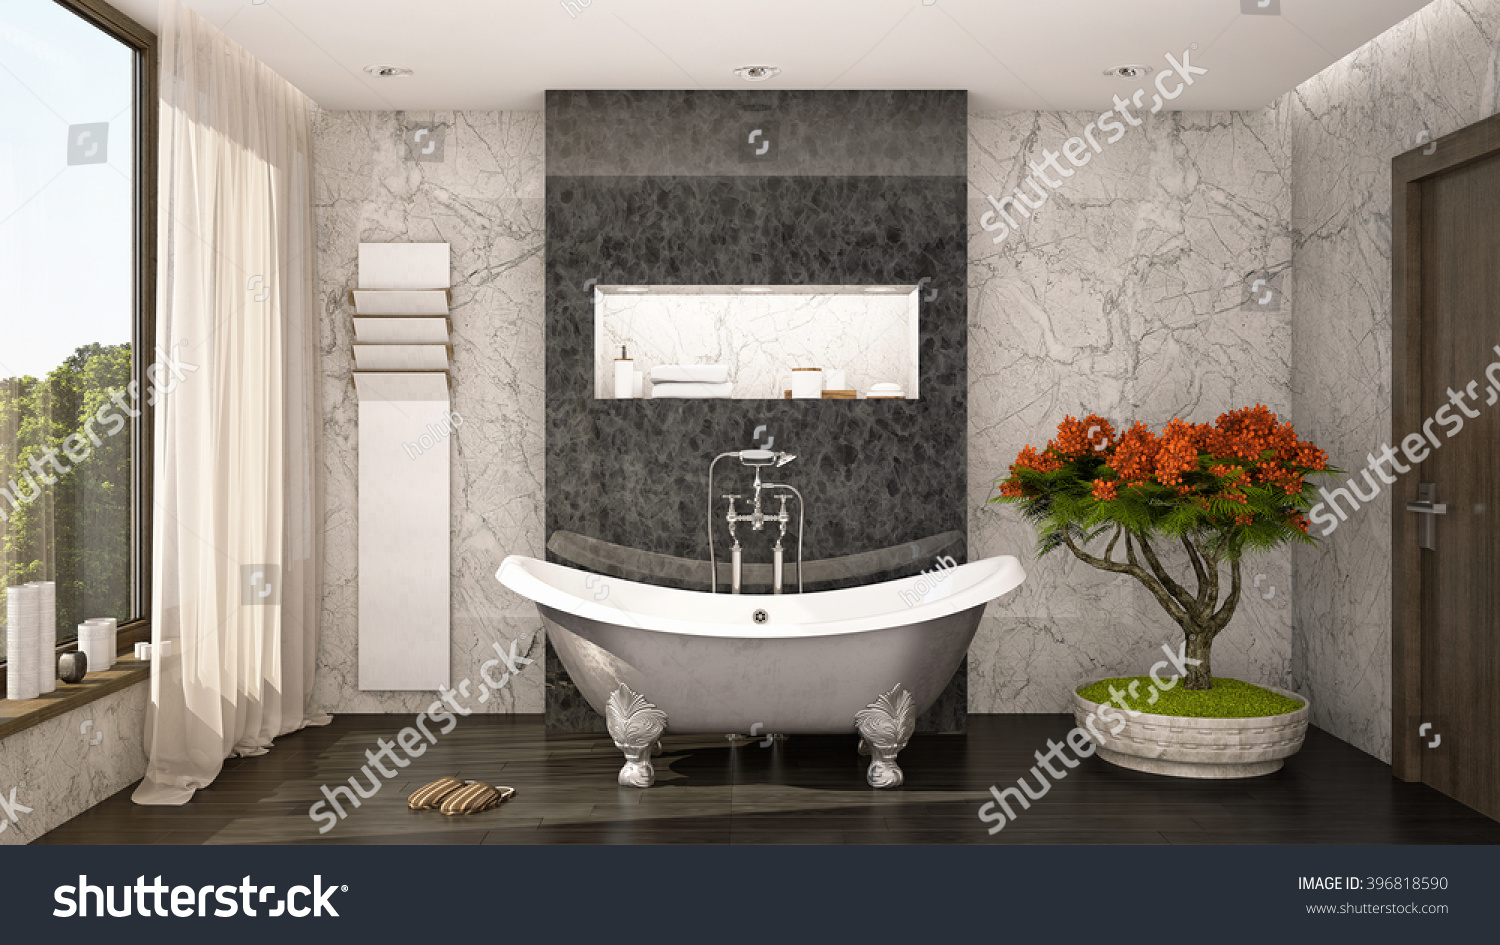 Glamour Bathroom With Big Greenery 3D Rendering / 3D Illustration